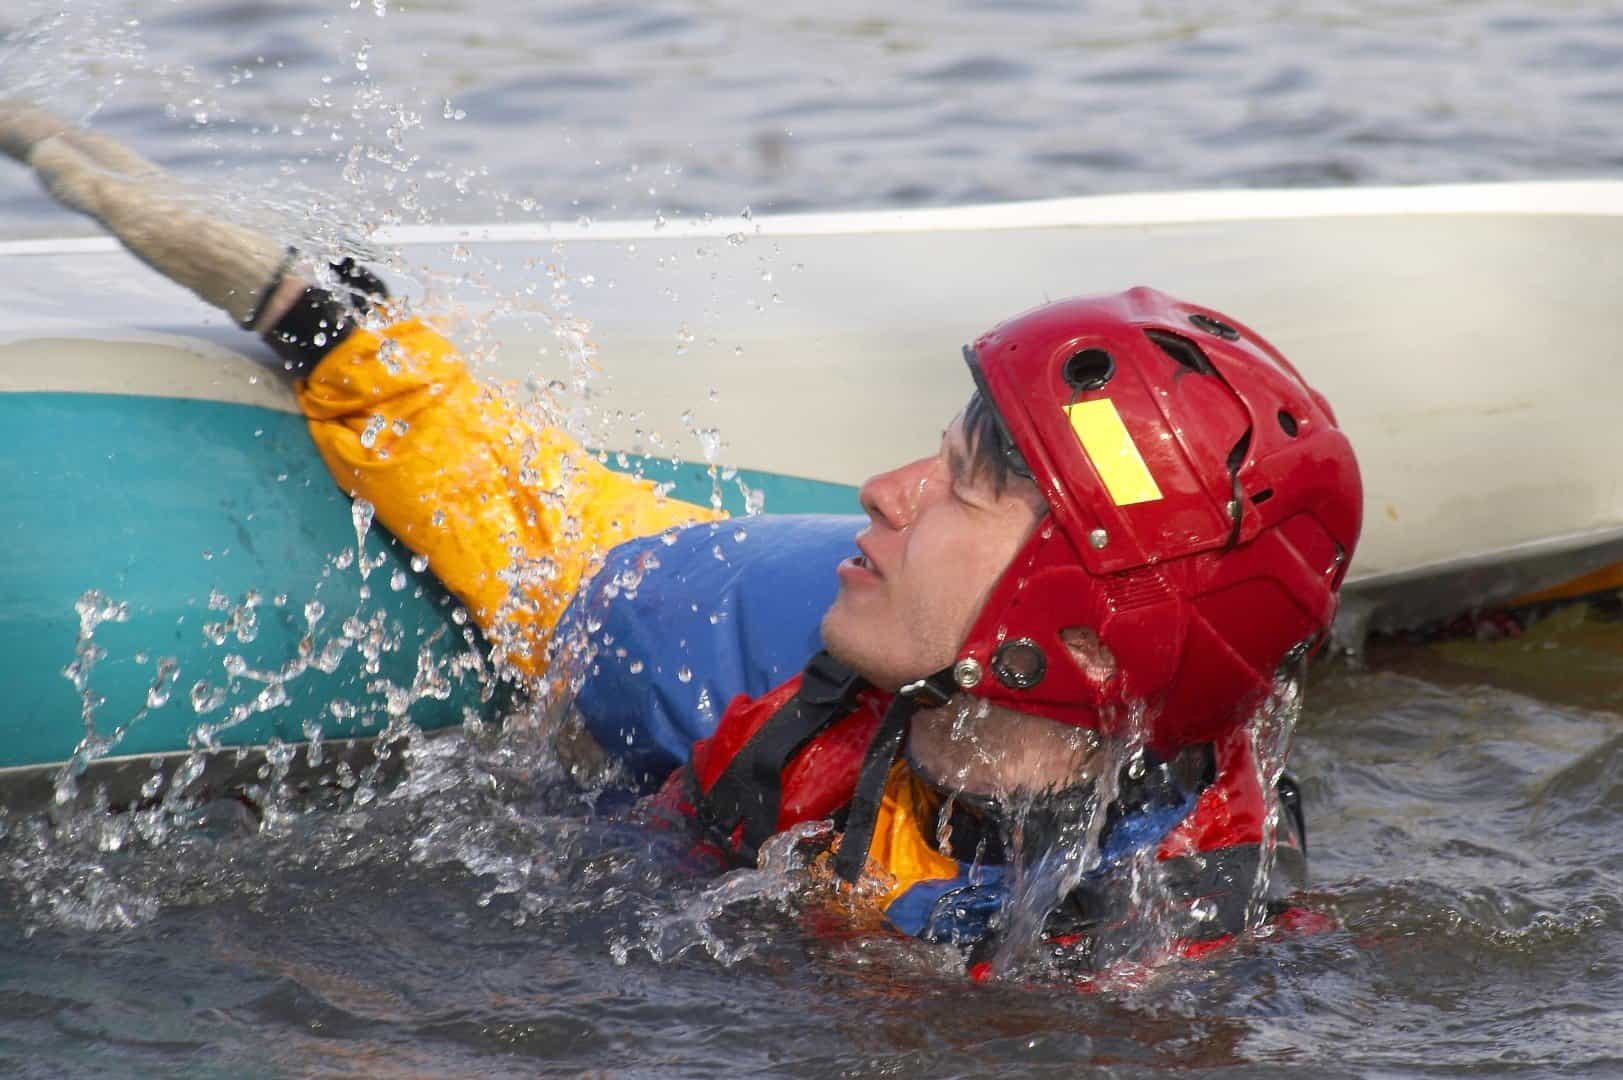 Falling and entering a kayak from the water